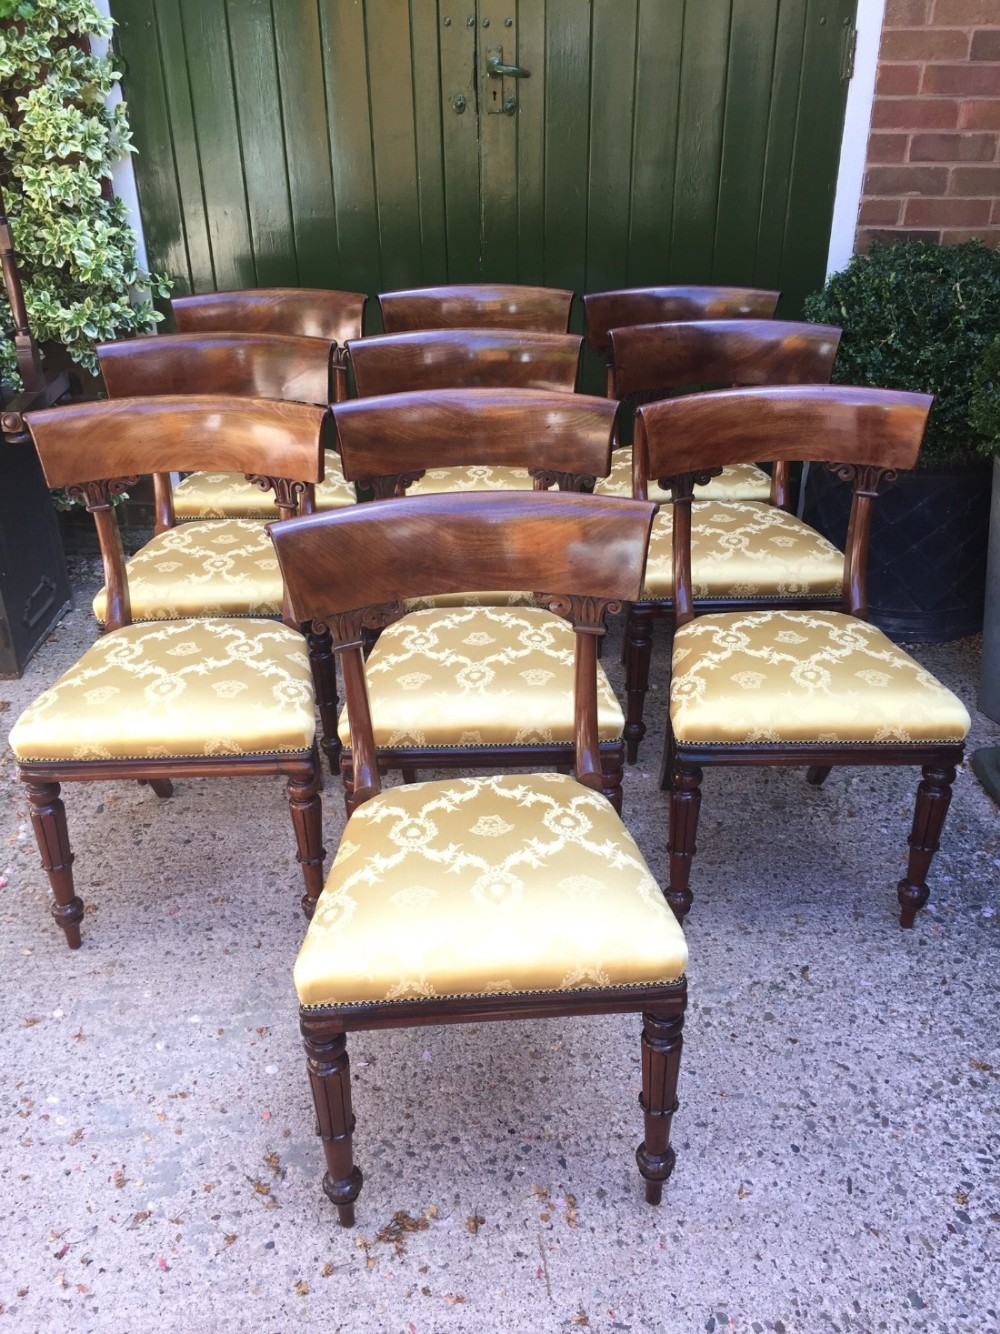 superb set of 10 c19th william iv period mahogany dining chairs